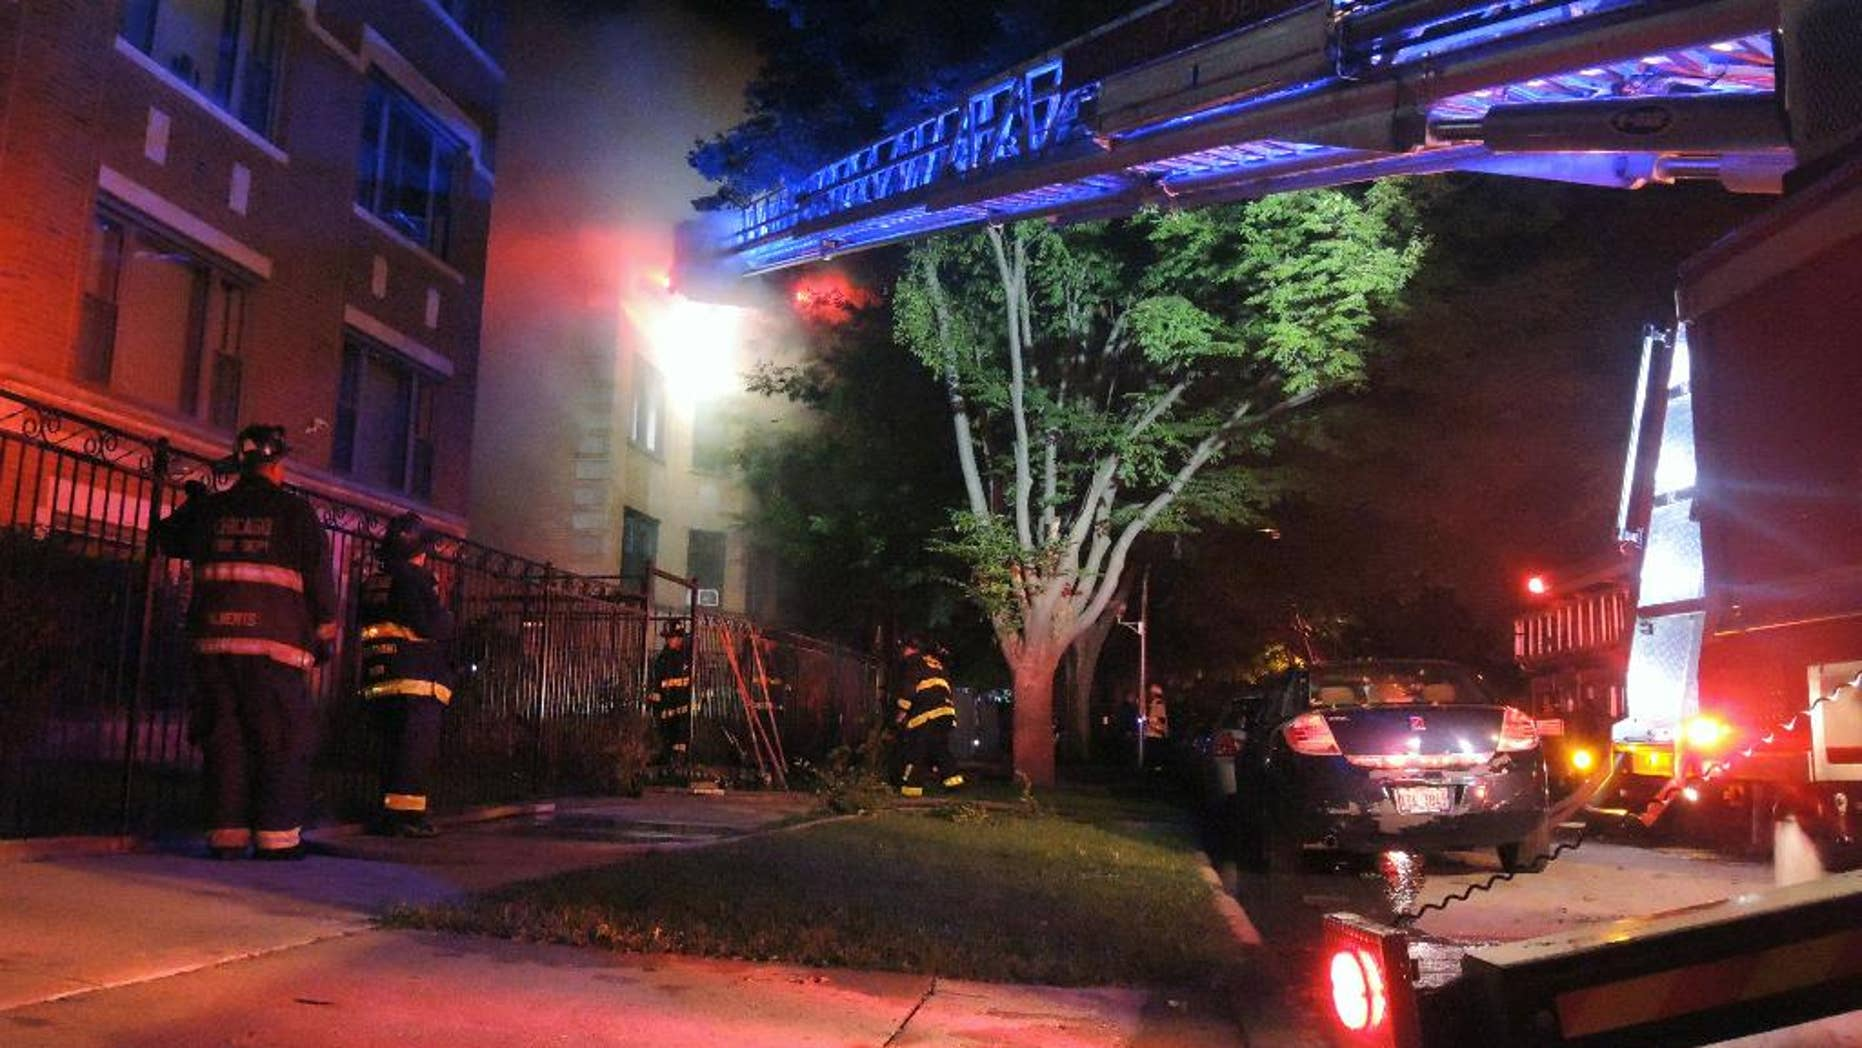 Chicago firefighters battle an apartment fire in the 8100 block of South Essex Avenue in the South Chicago neighborhood early on Tuesday, Aug. 23, 2016. The fire at a Chicago apartment building that appears to have been deliberately set killed multiple people Tuesday, police said. (Alexandra Chachkevitch/Chicago Tribune via AP)